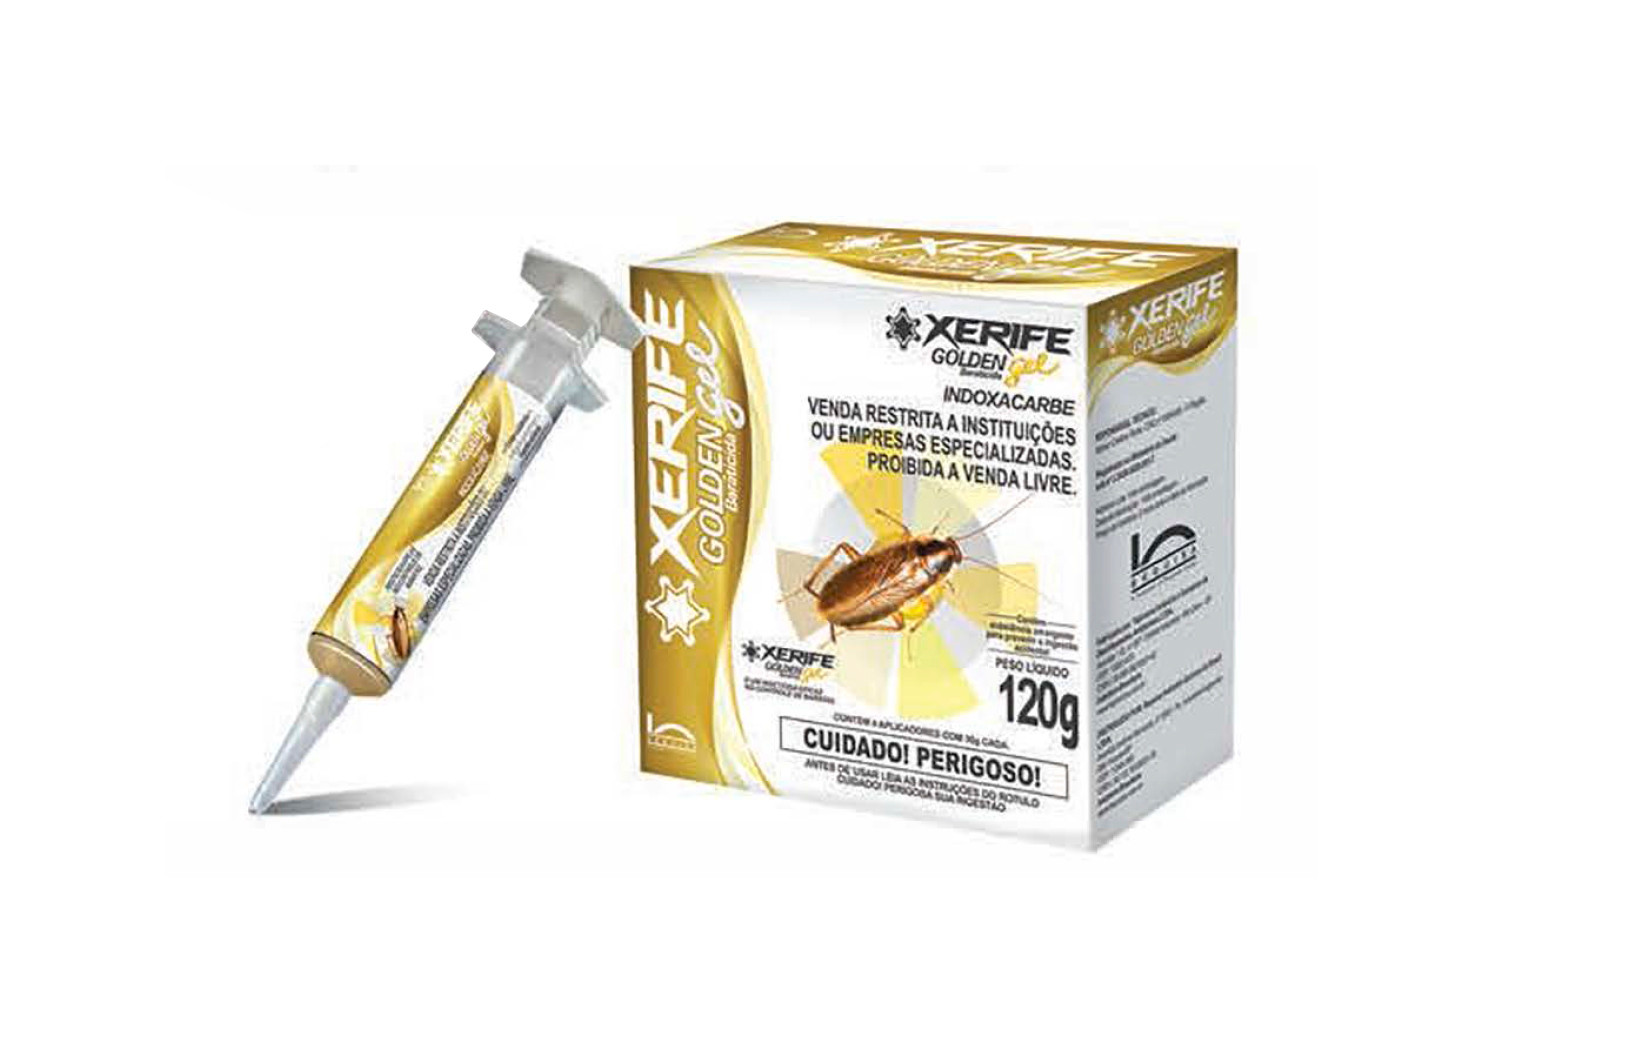 XERIFE GOLDEN GEL BARATICIDA_FOTO.jpg